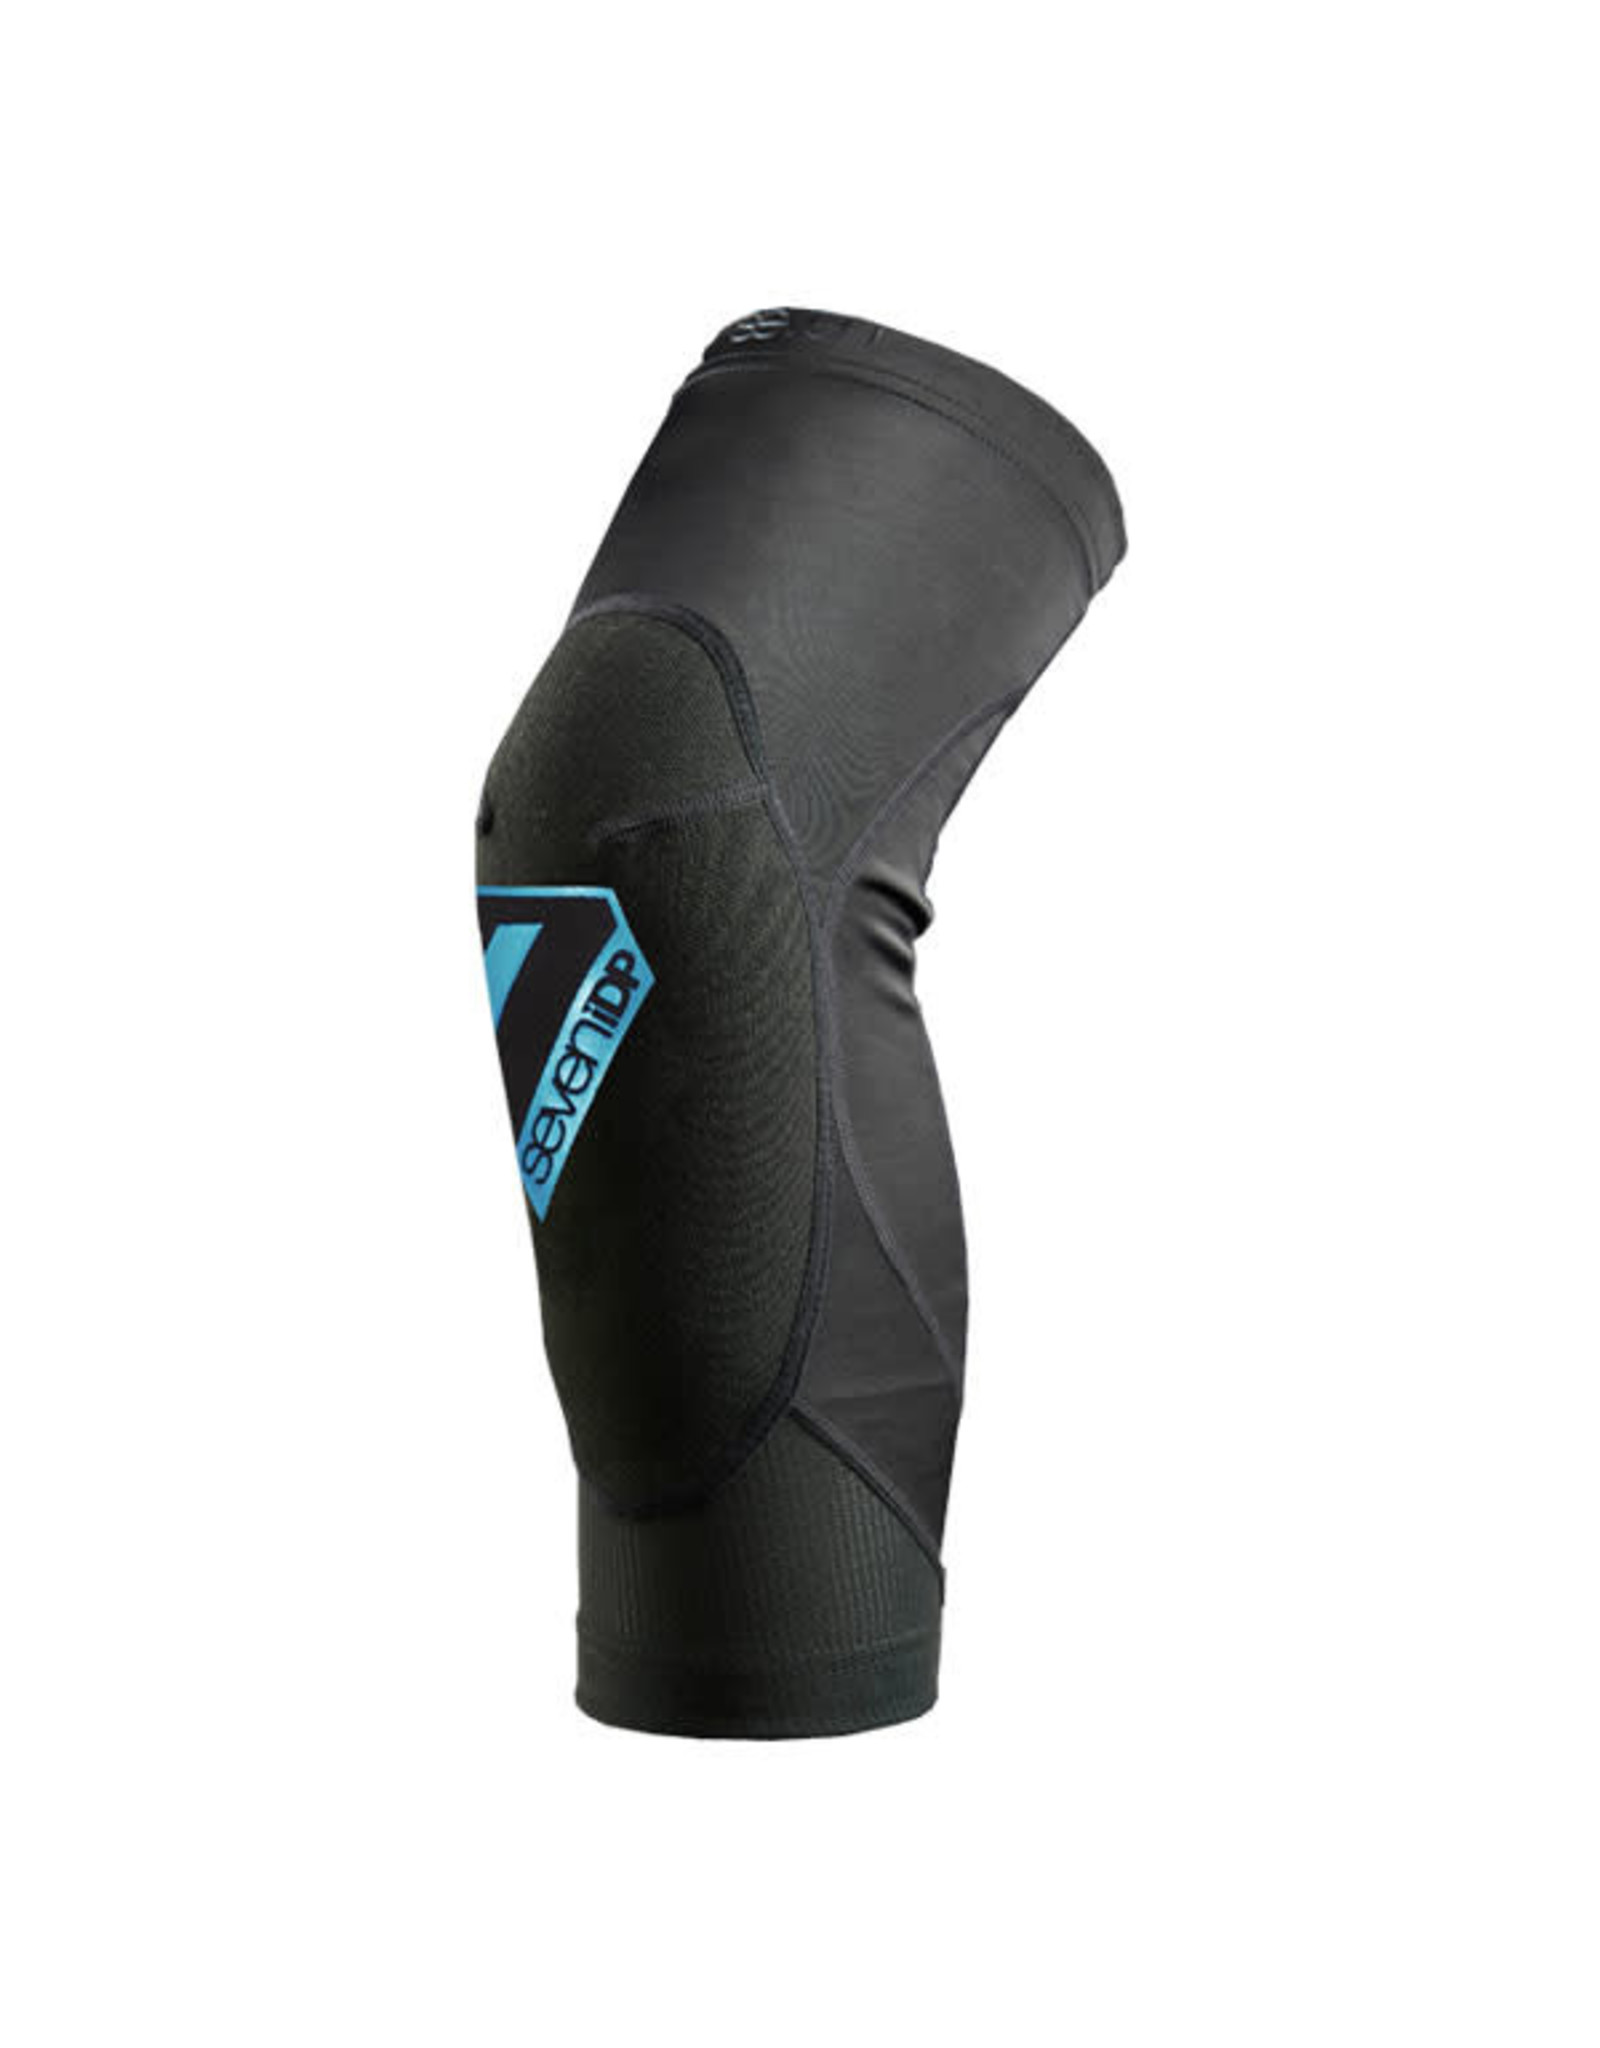 SEVENIDP TRANSITION KNEE PAD